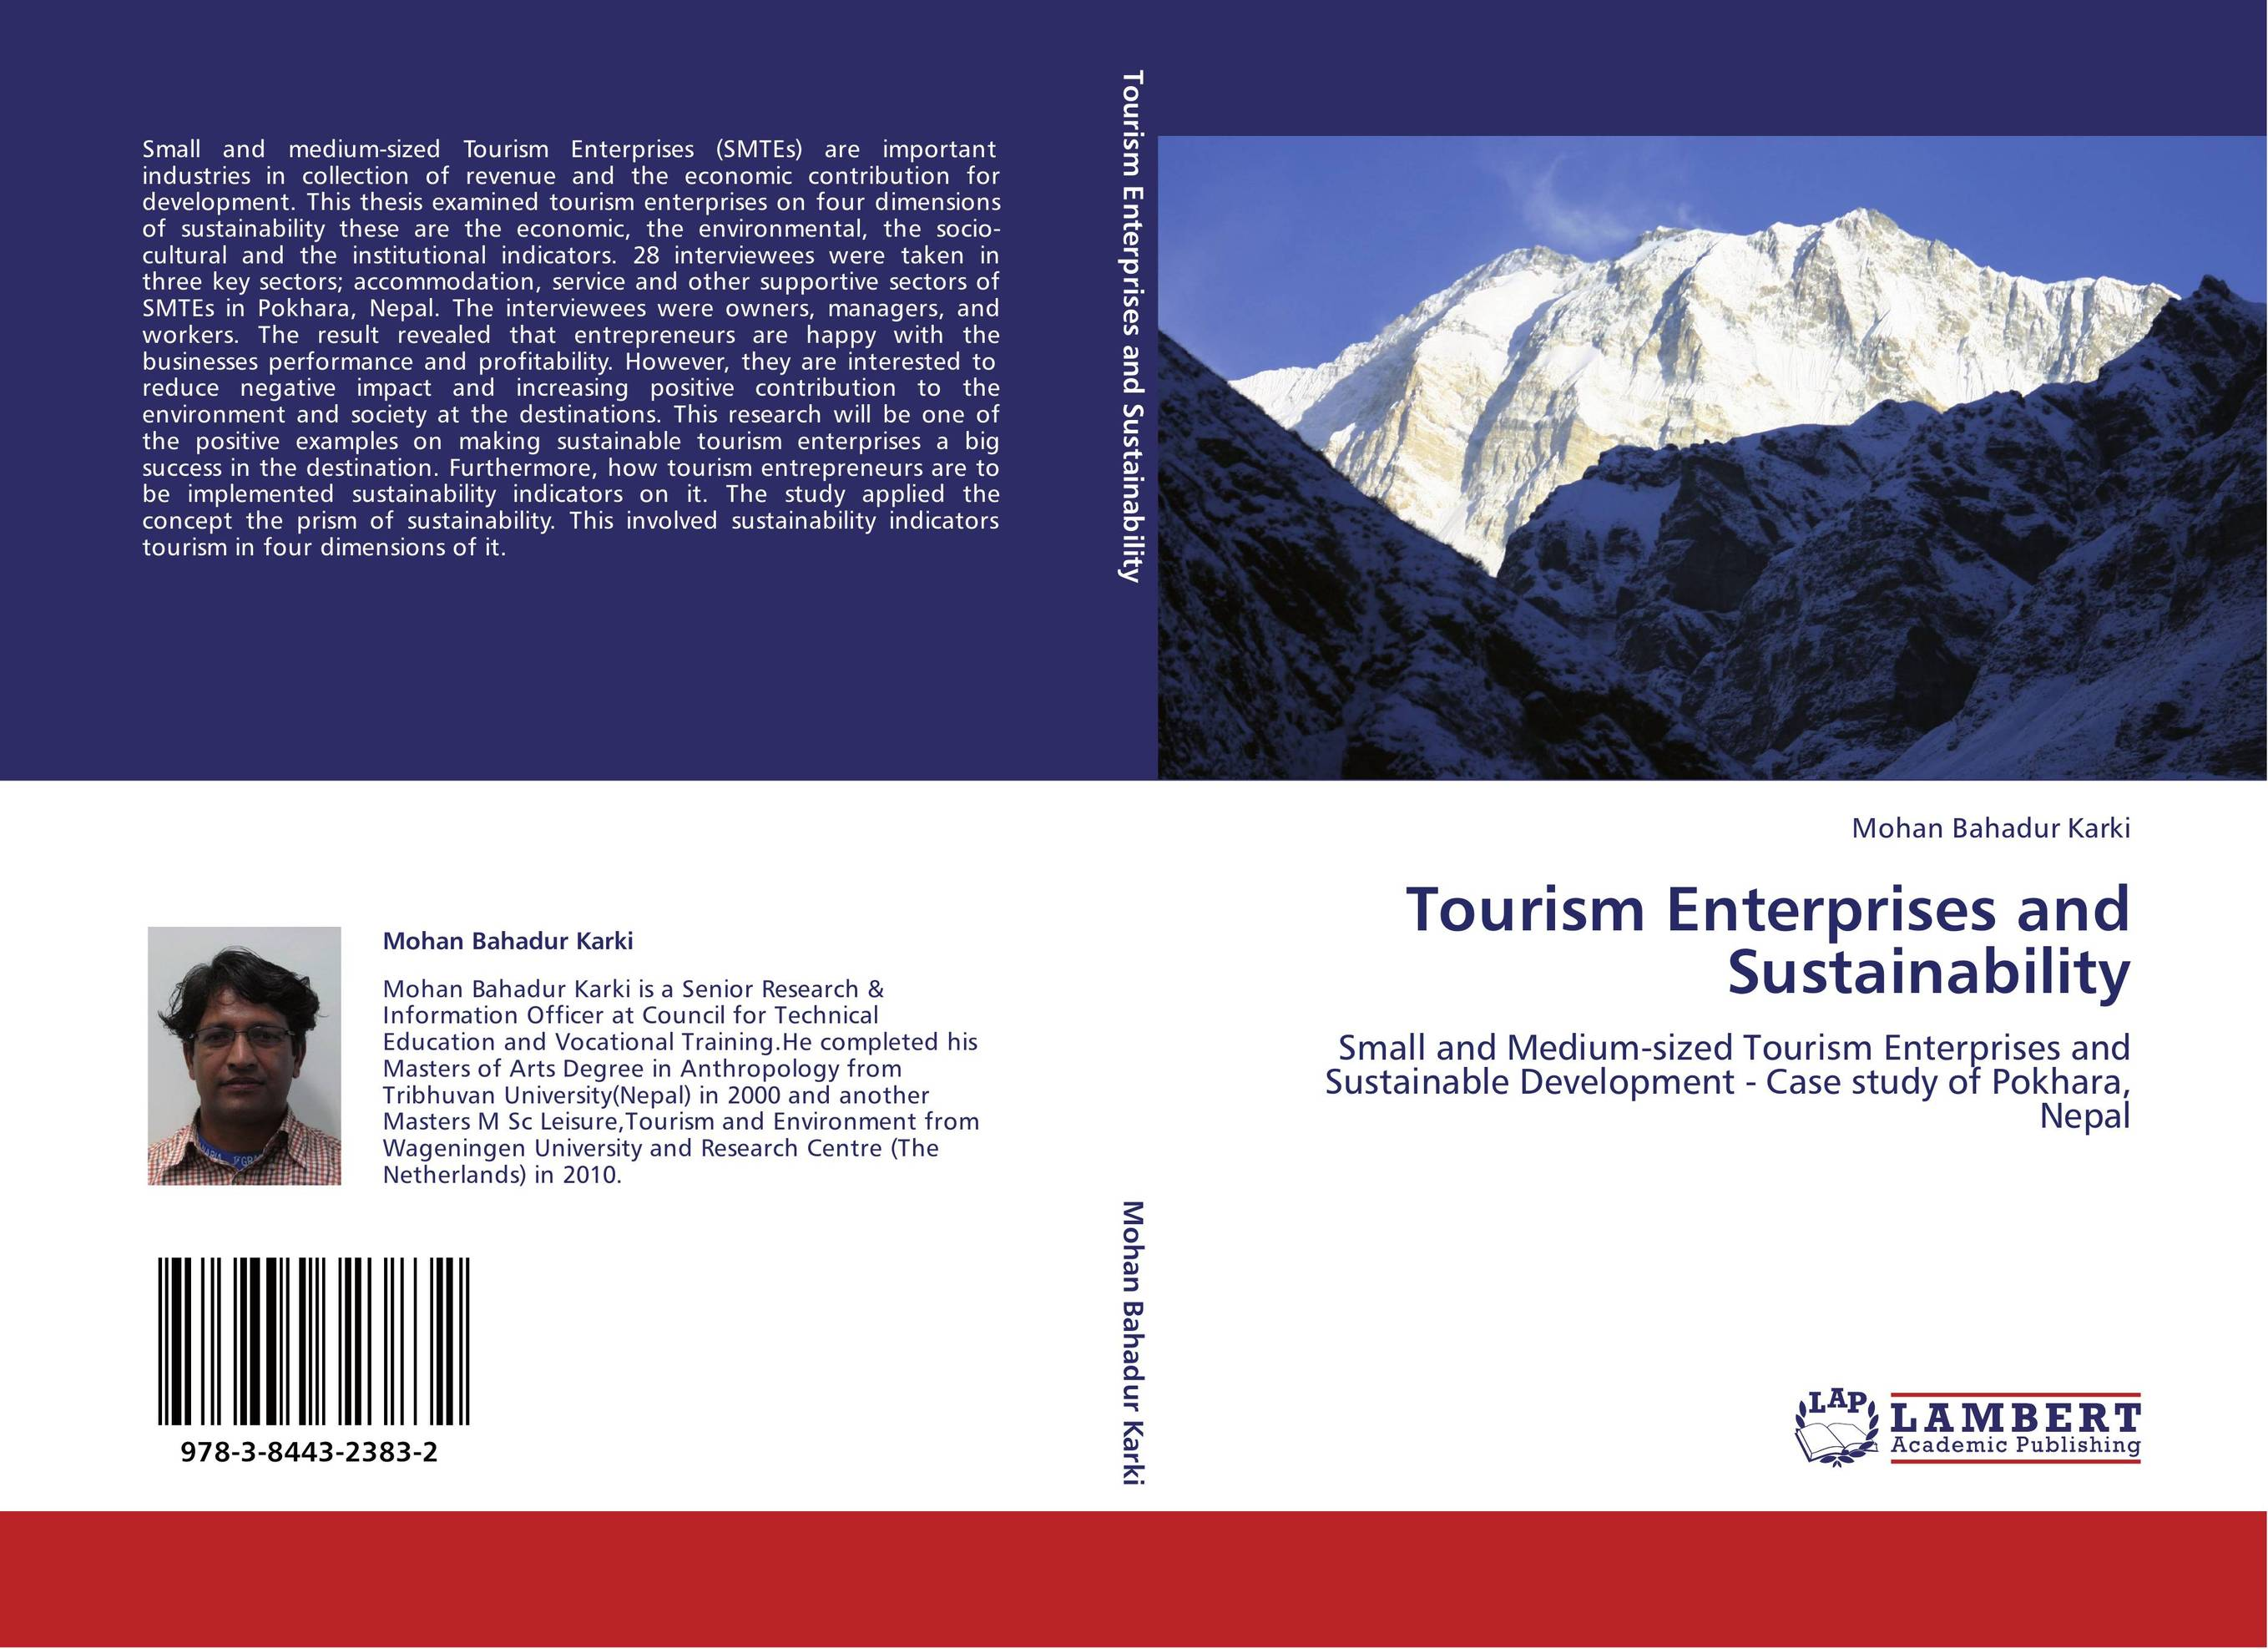 foriegn thesis about bs tourism Tourism field, and suggested that the published empirical research studies lacked theoretical foundation and methodology, and that there is a great need for further empirical km research in the hospitality and tourism context.